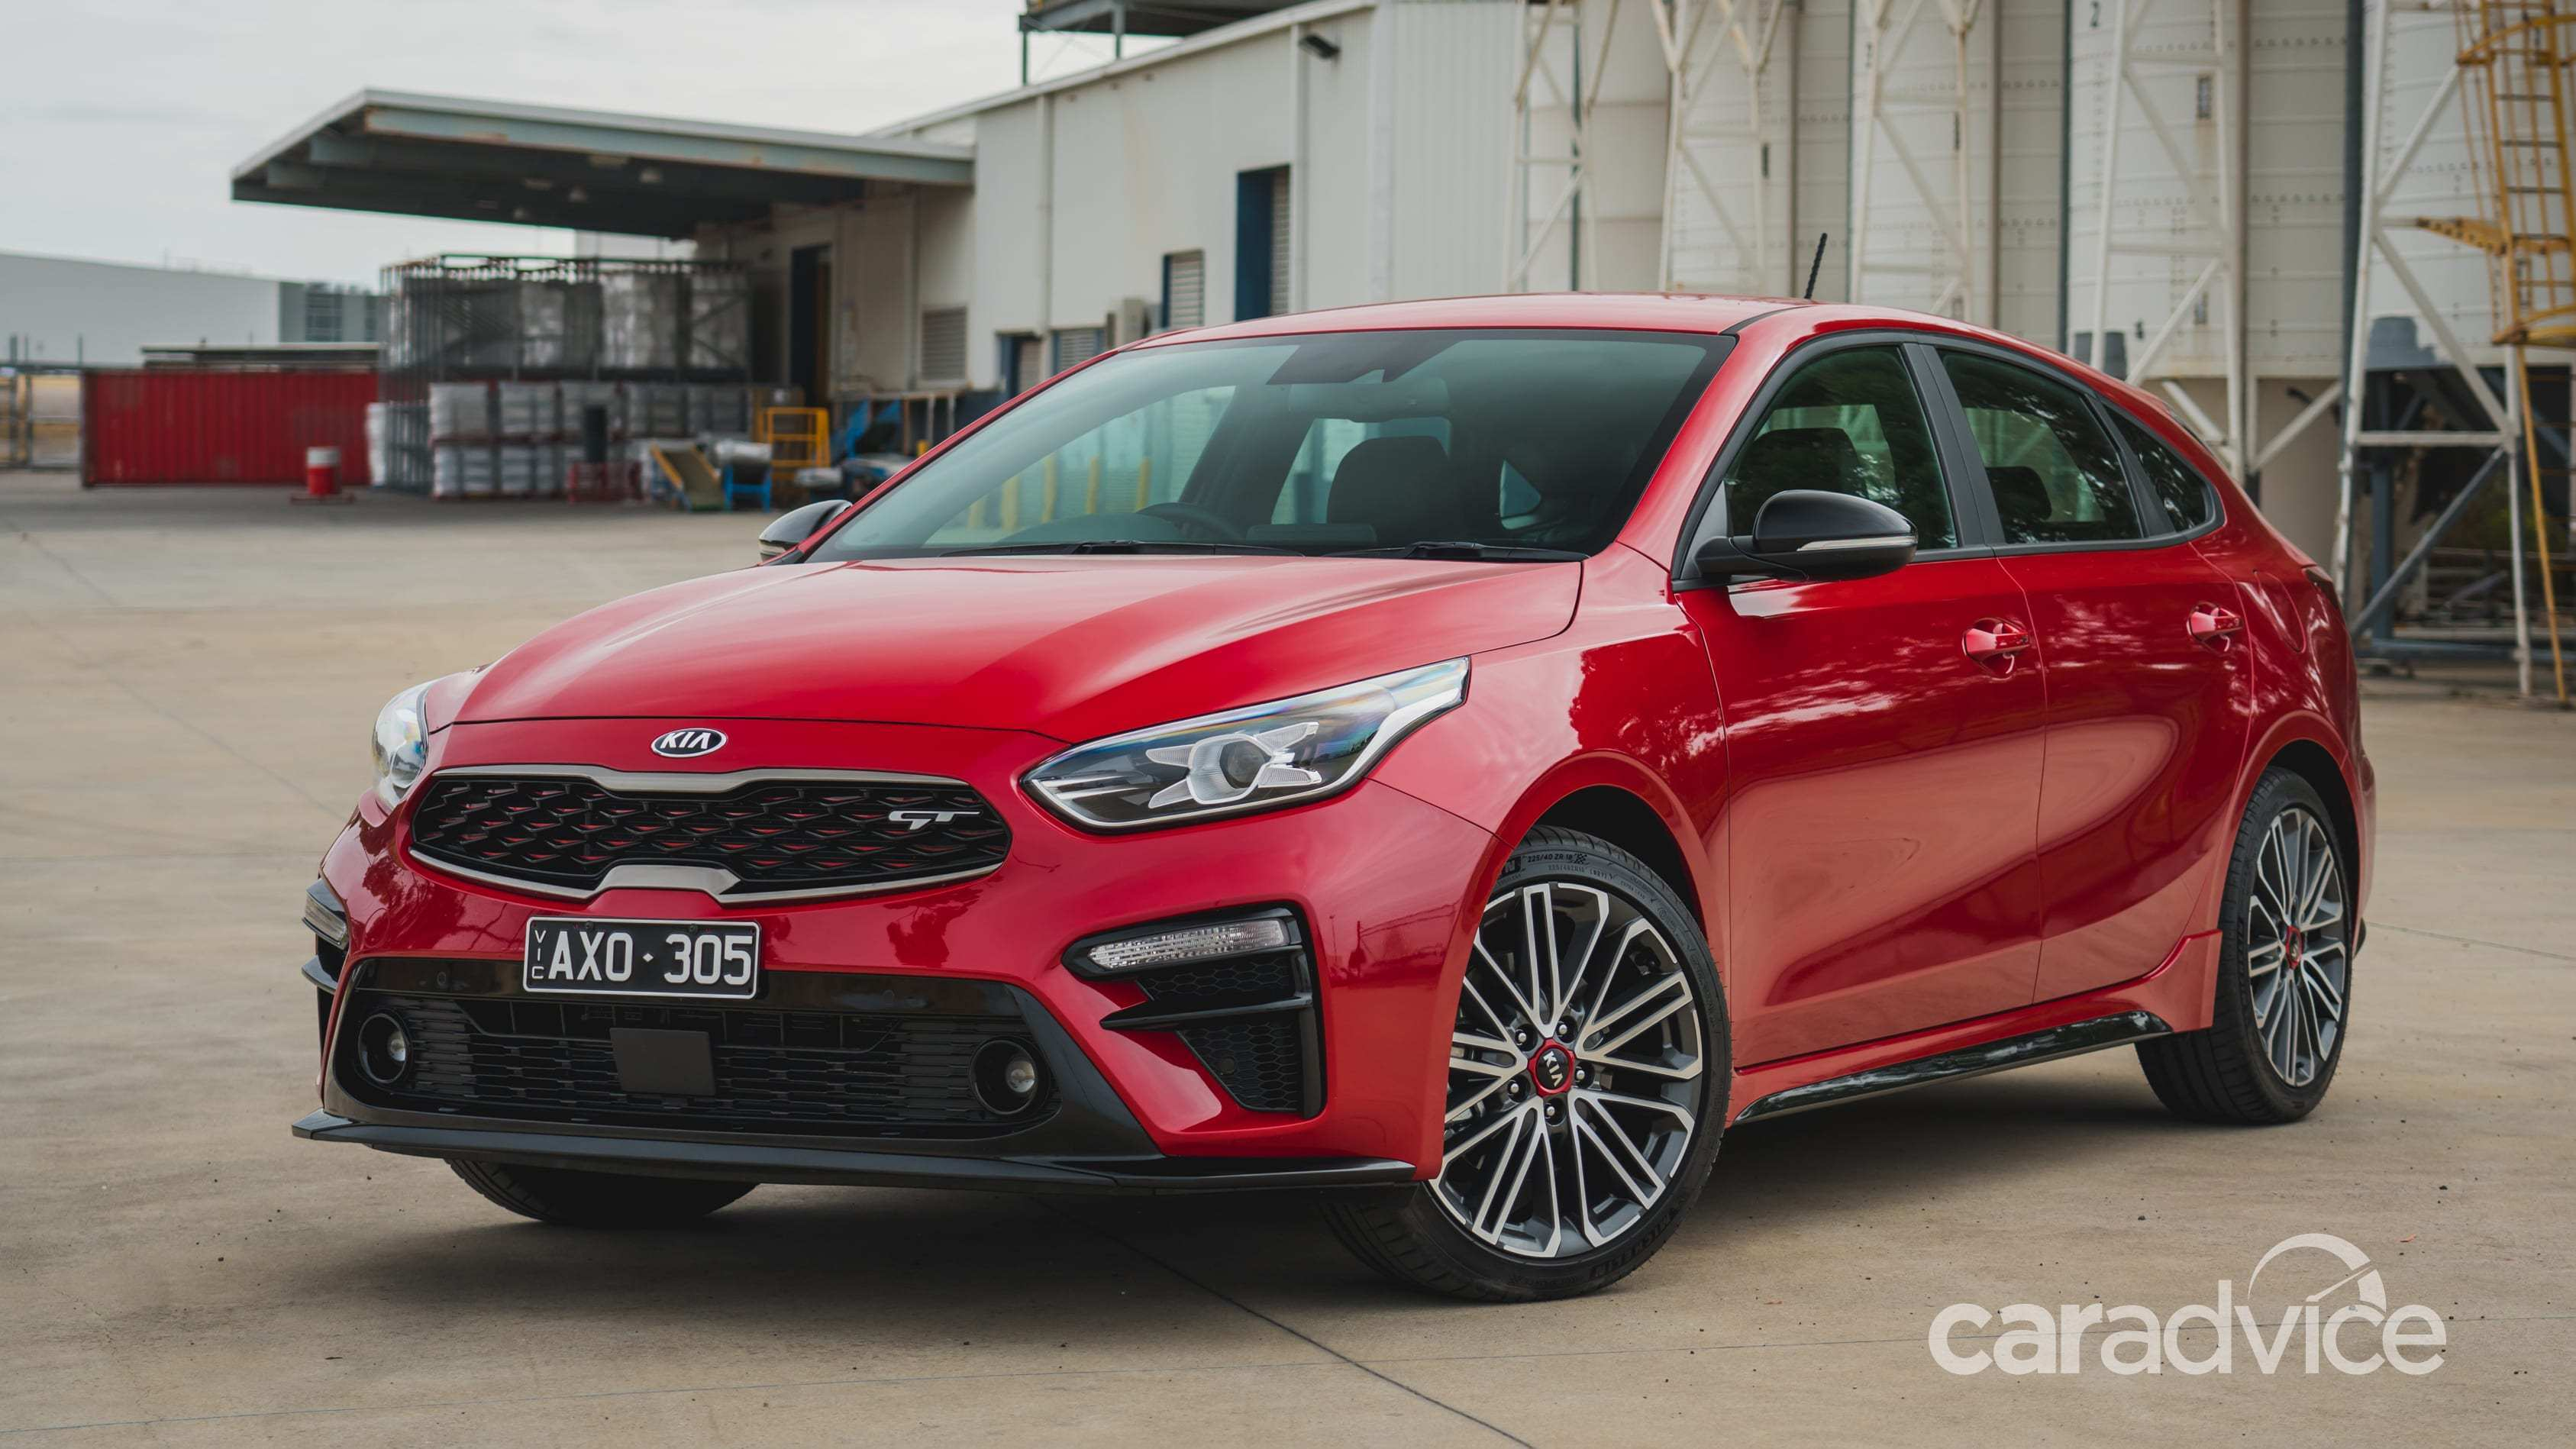 86 Gallery of Kia Cerato Hatch 2019 Review Redesign by Kia Cerato Hatch 2019 Review